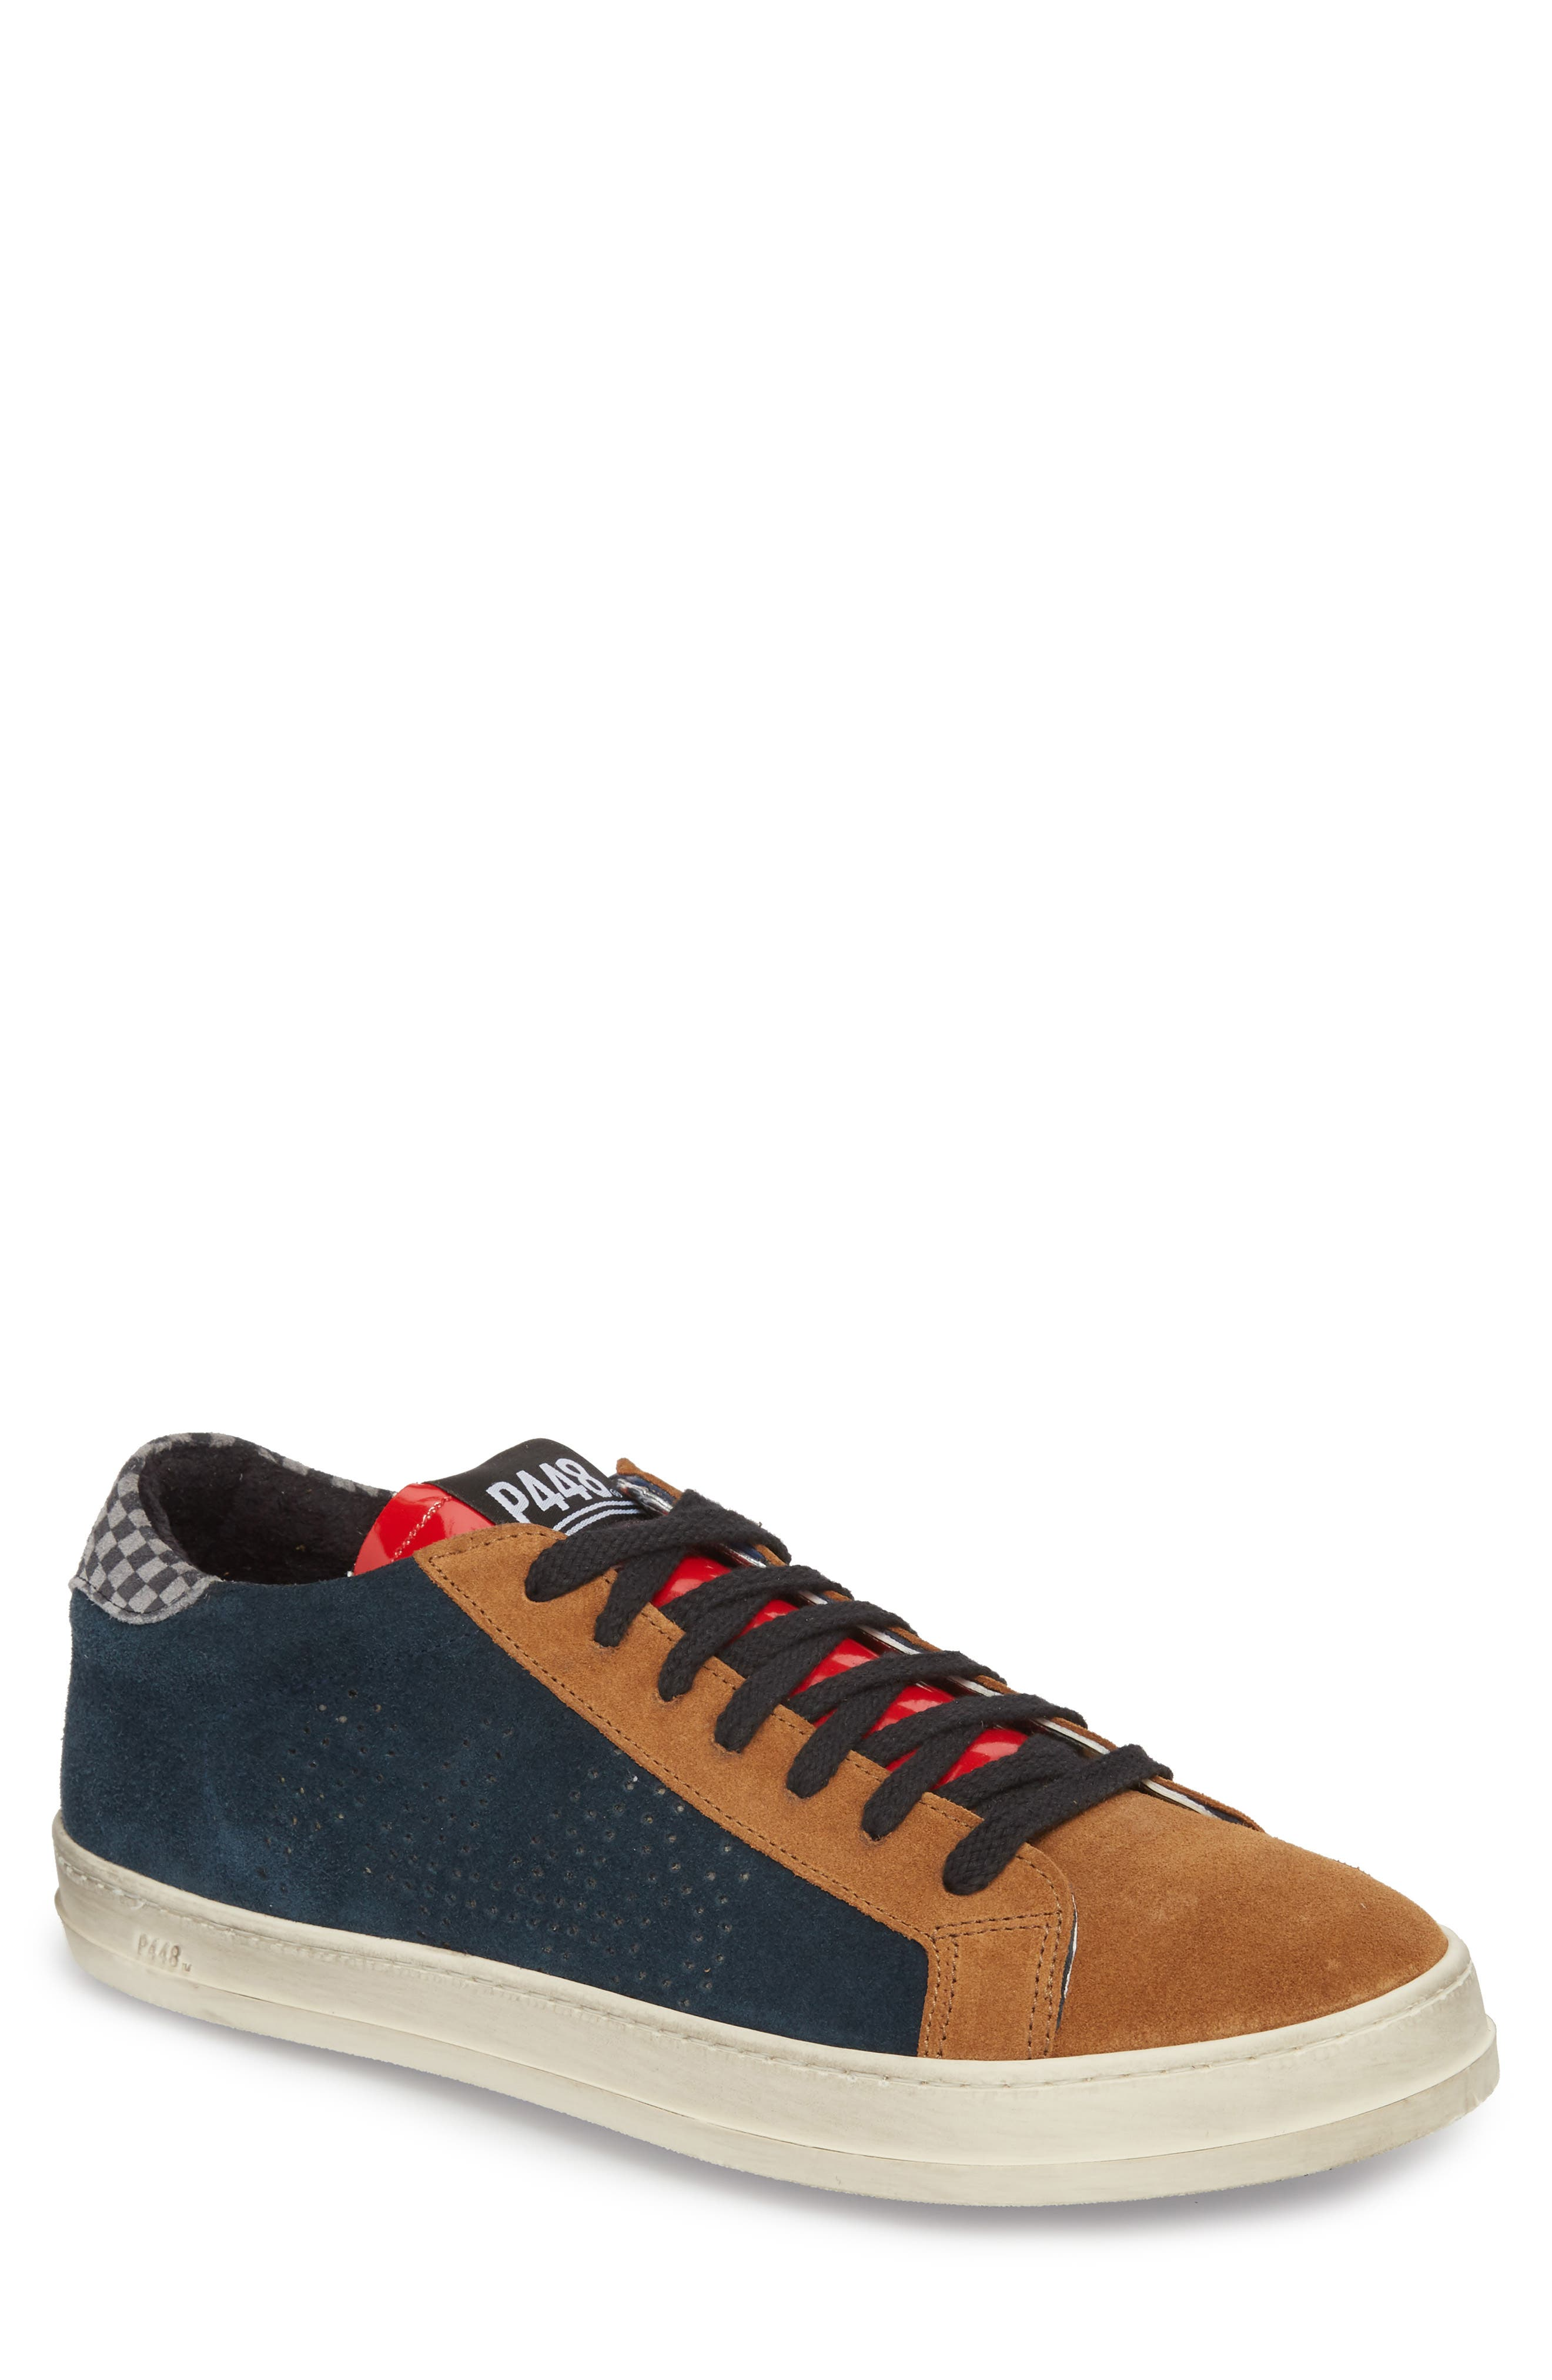 P448 E8 JOHN PATCHWORK-PANEL SUEDE LOW-TOP TRAINERS